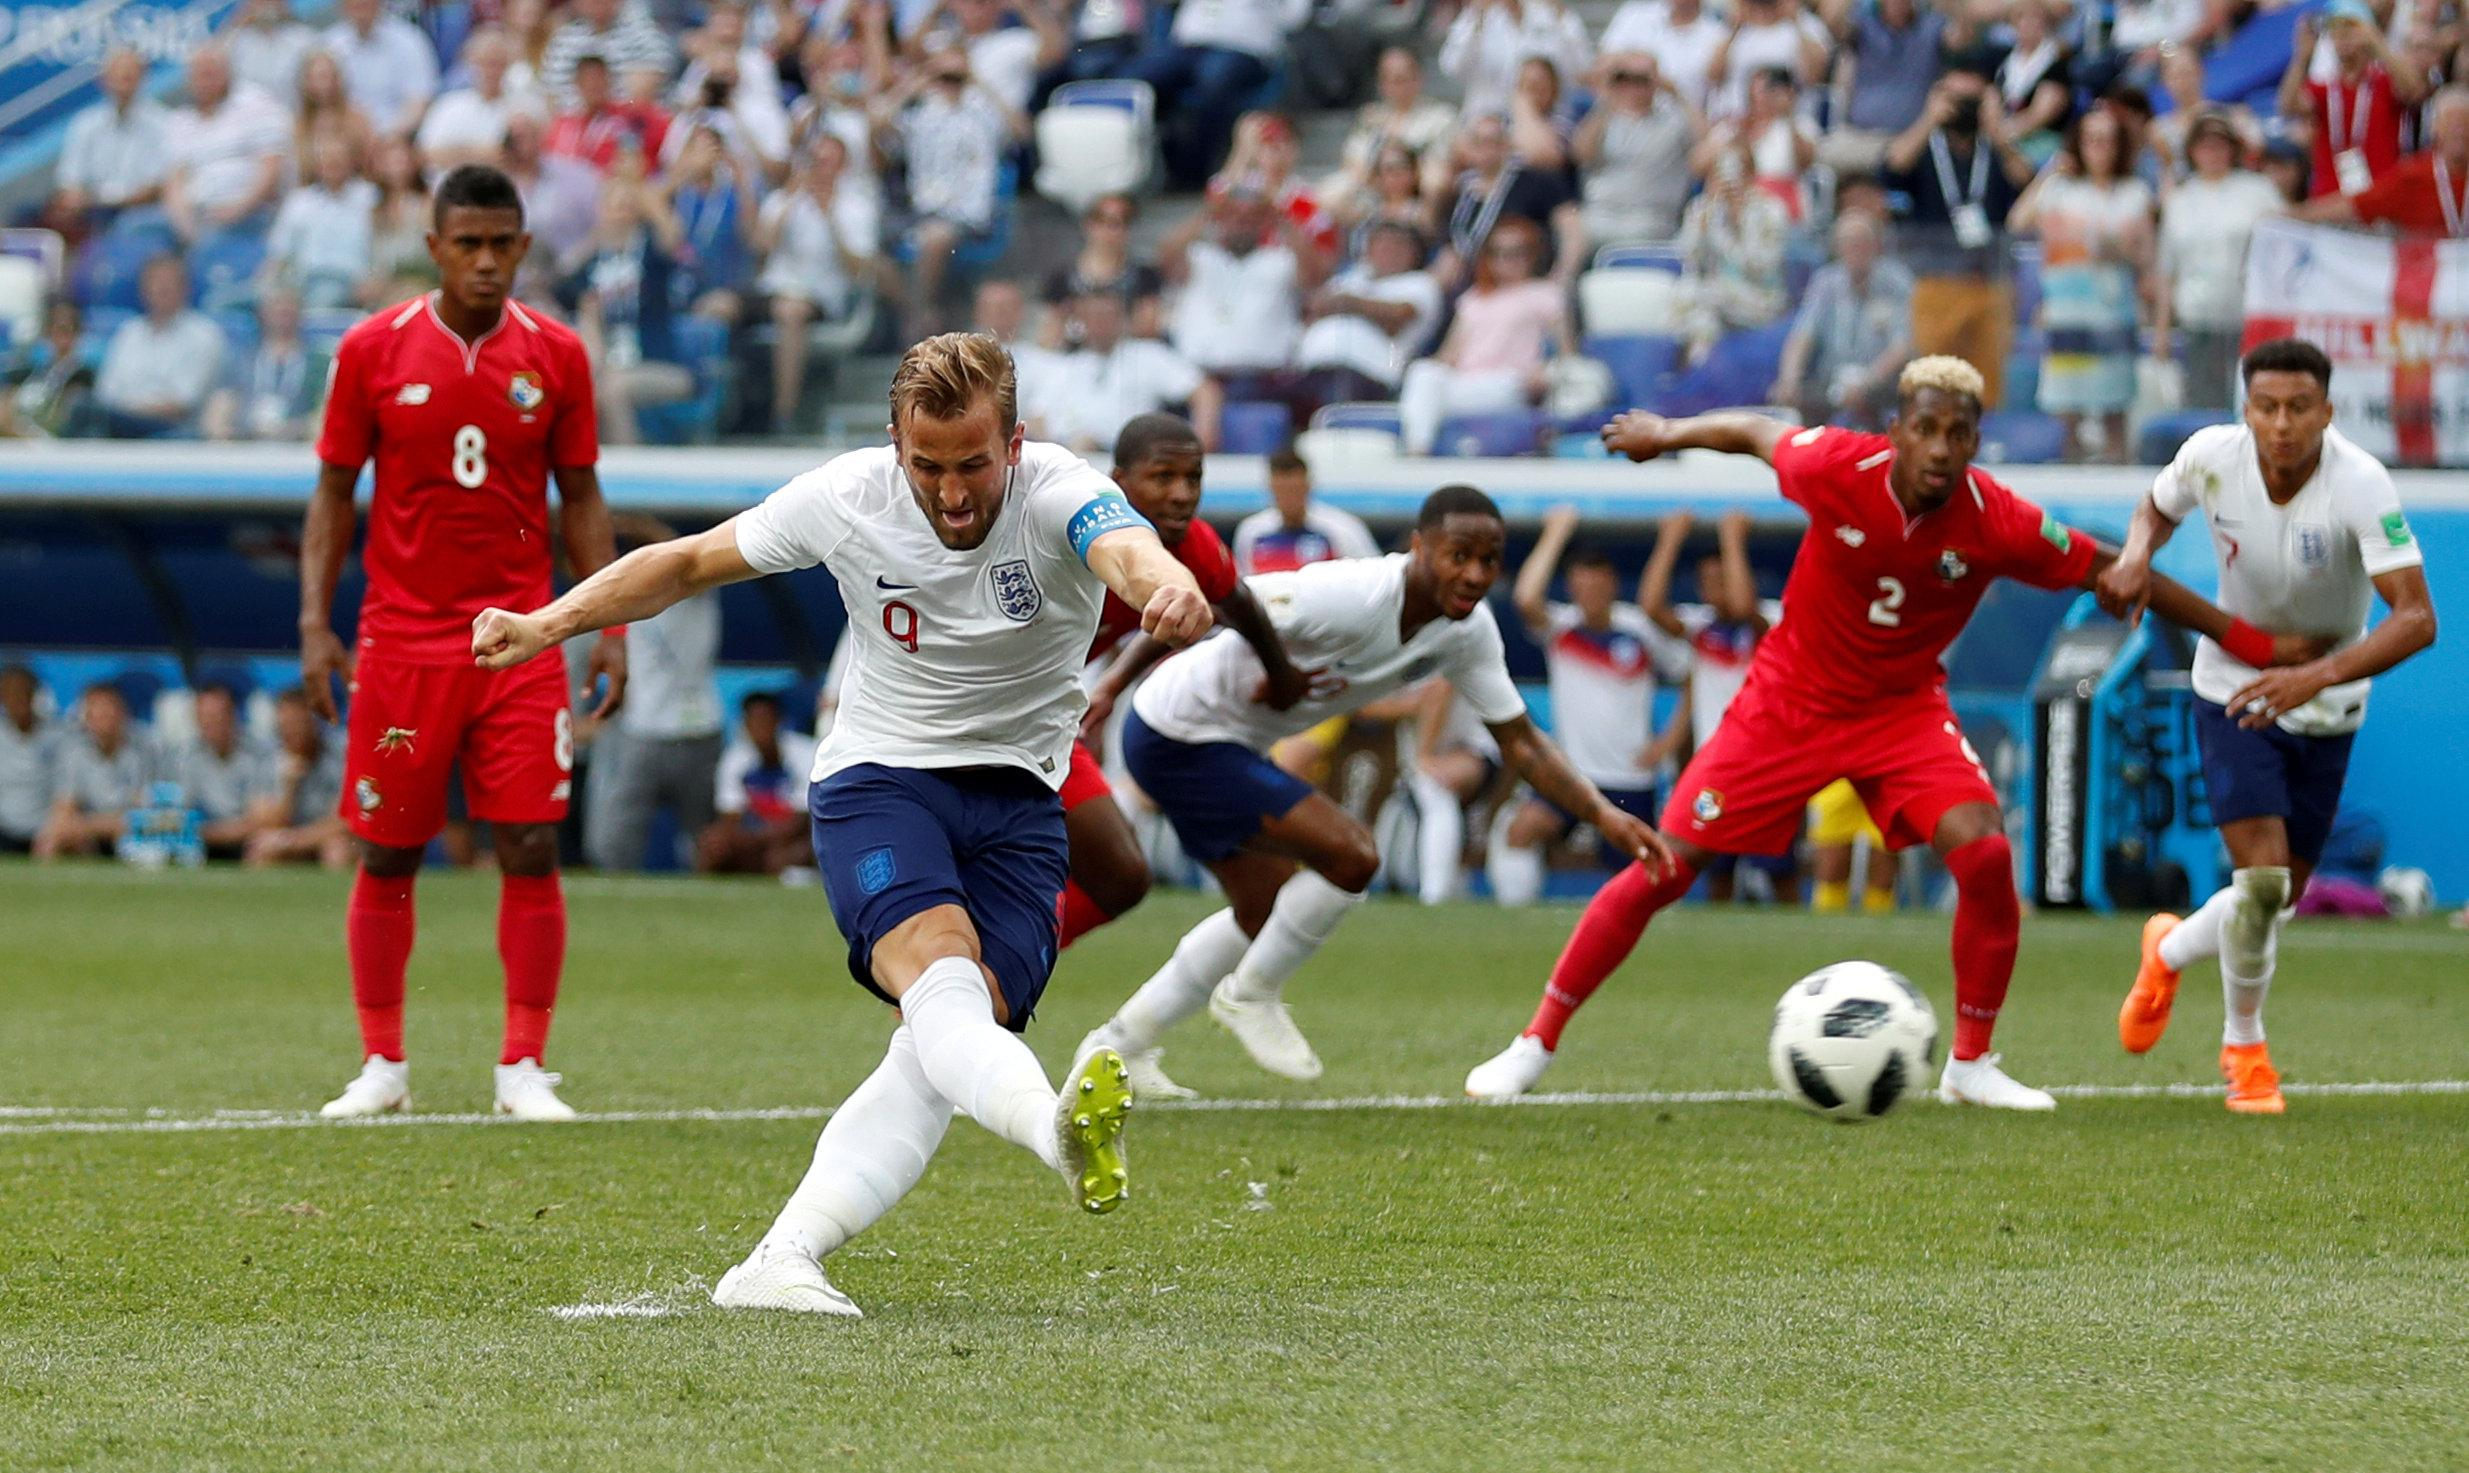 Only Gary Lineker has scored more goals than Kane for England at the World Cup